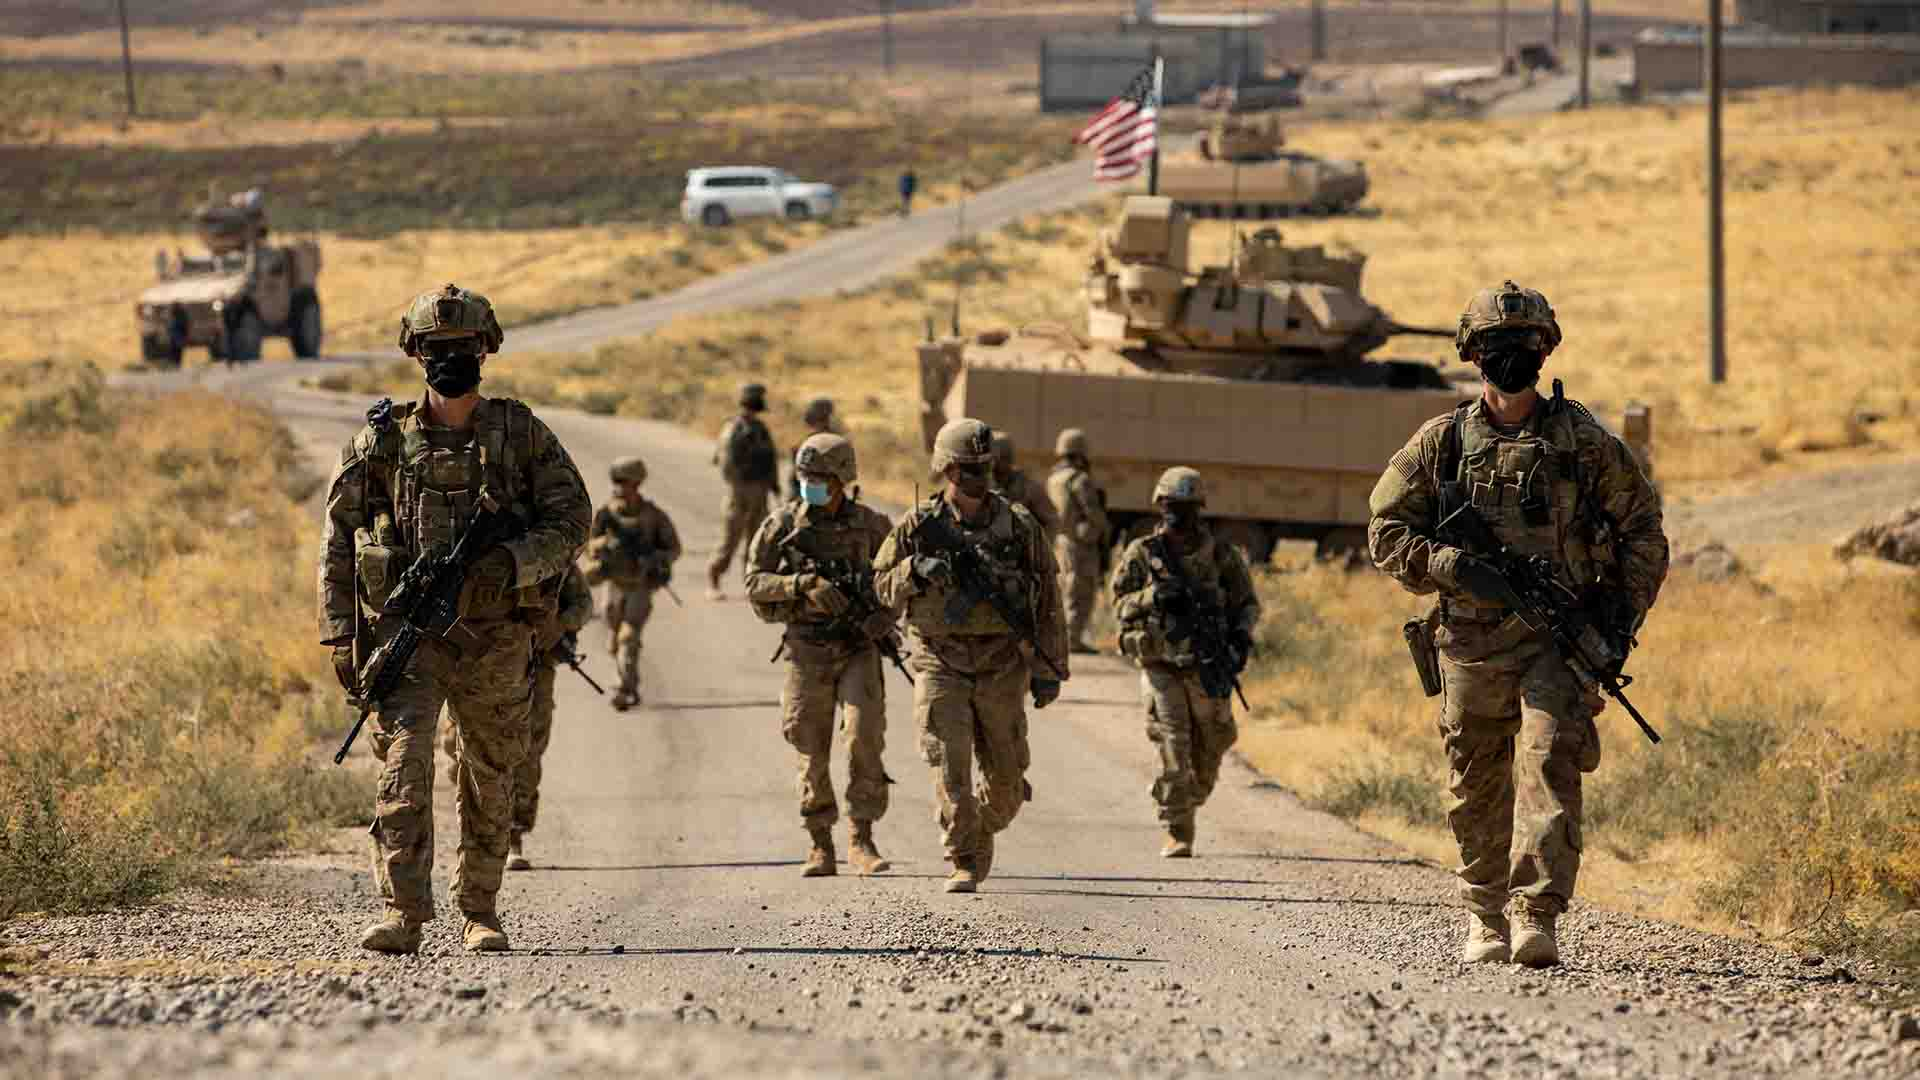 US soldiers accompanying Bradley Fighting Vehicle northeast Syria.